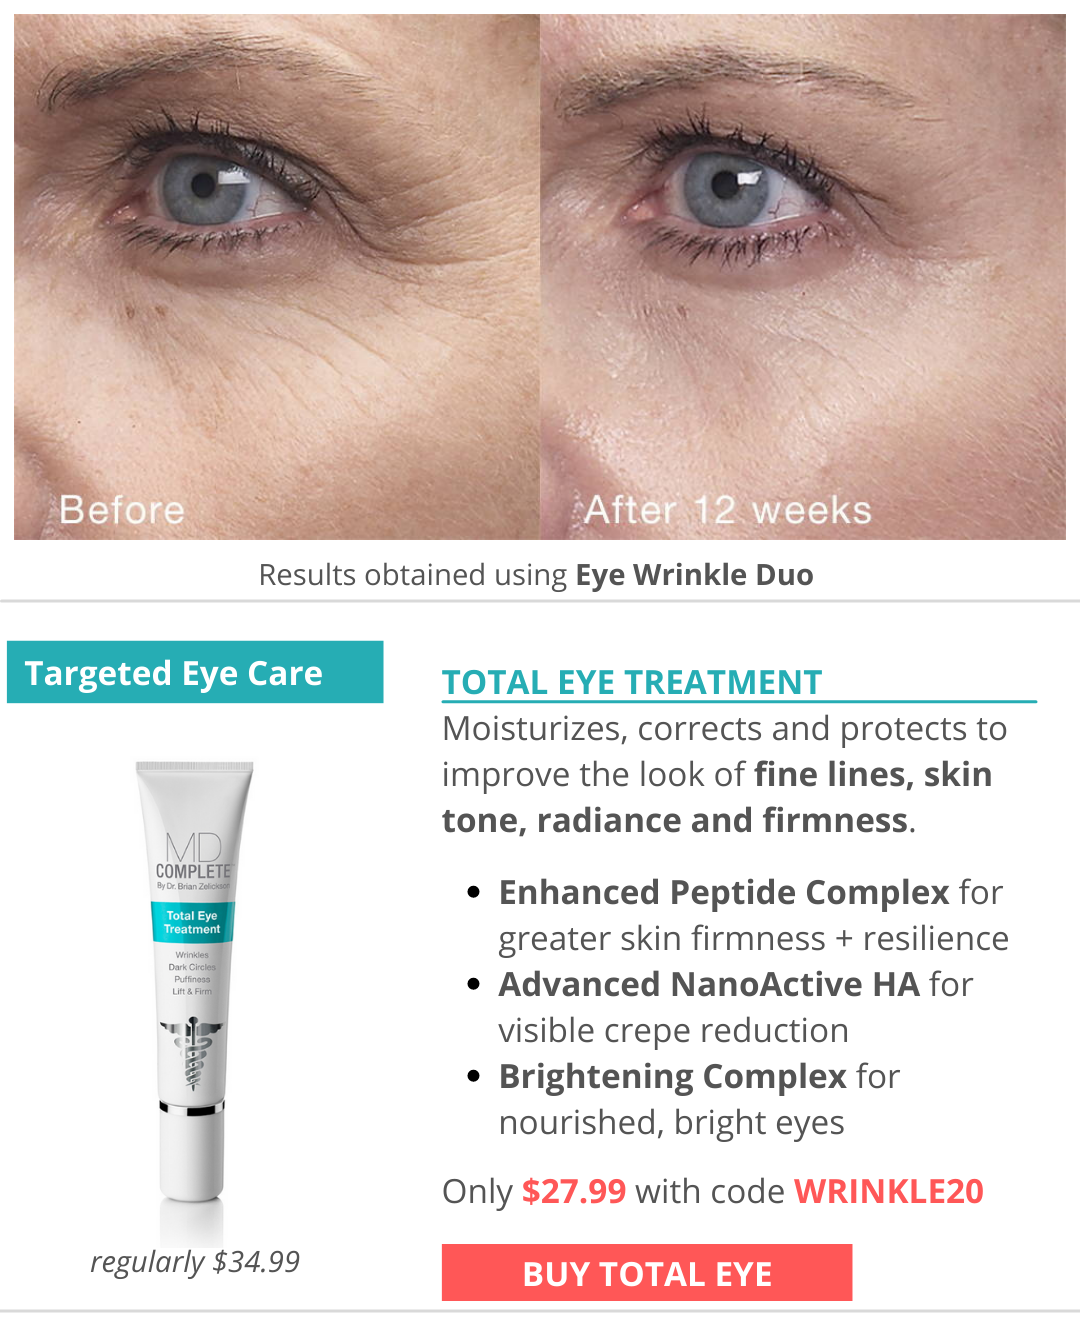 Clinically proven eye rejuvenation with Total Eye Treatment